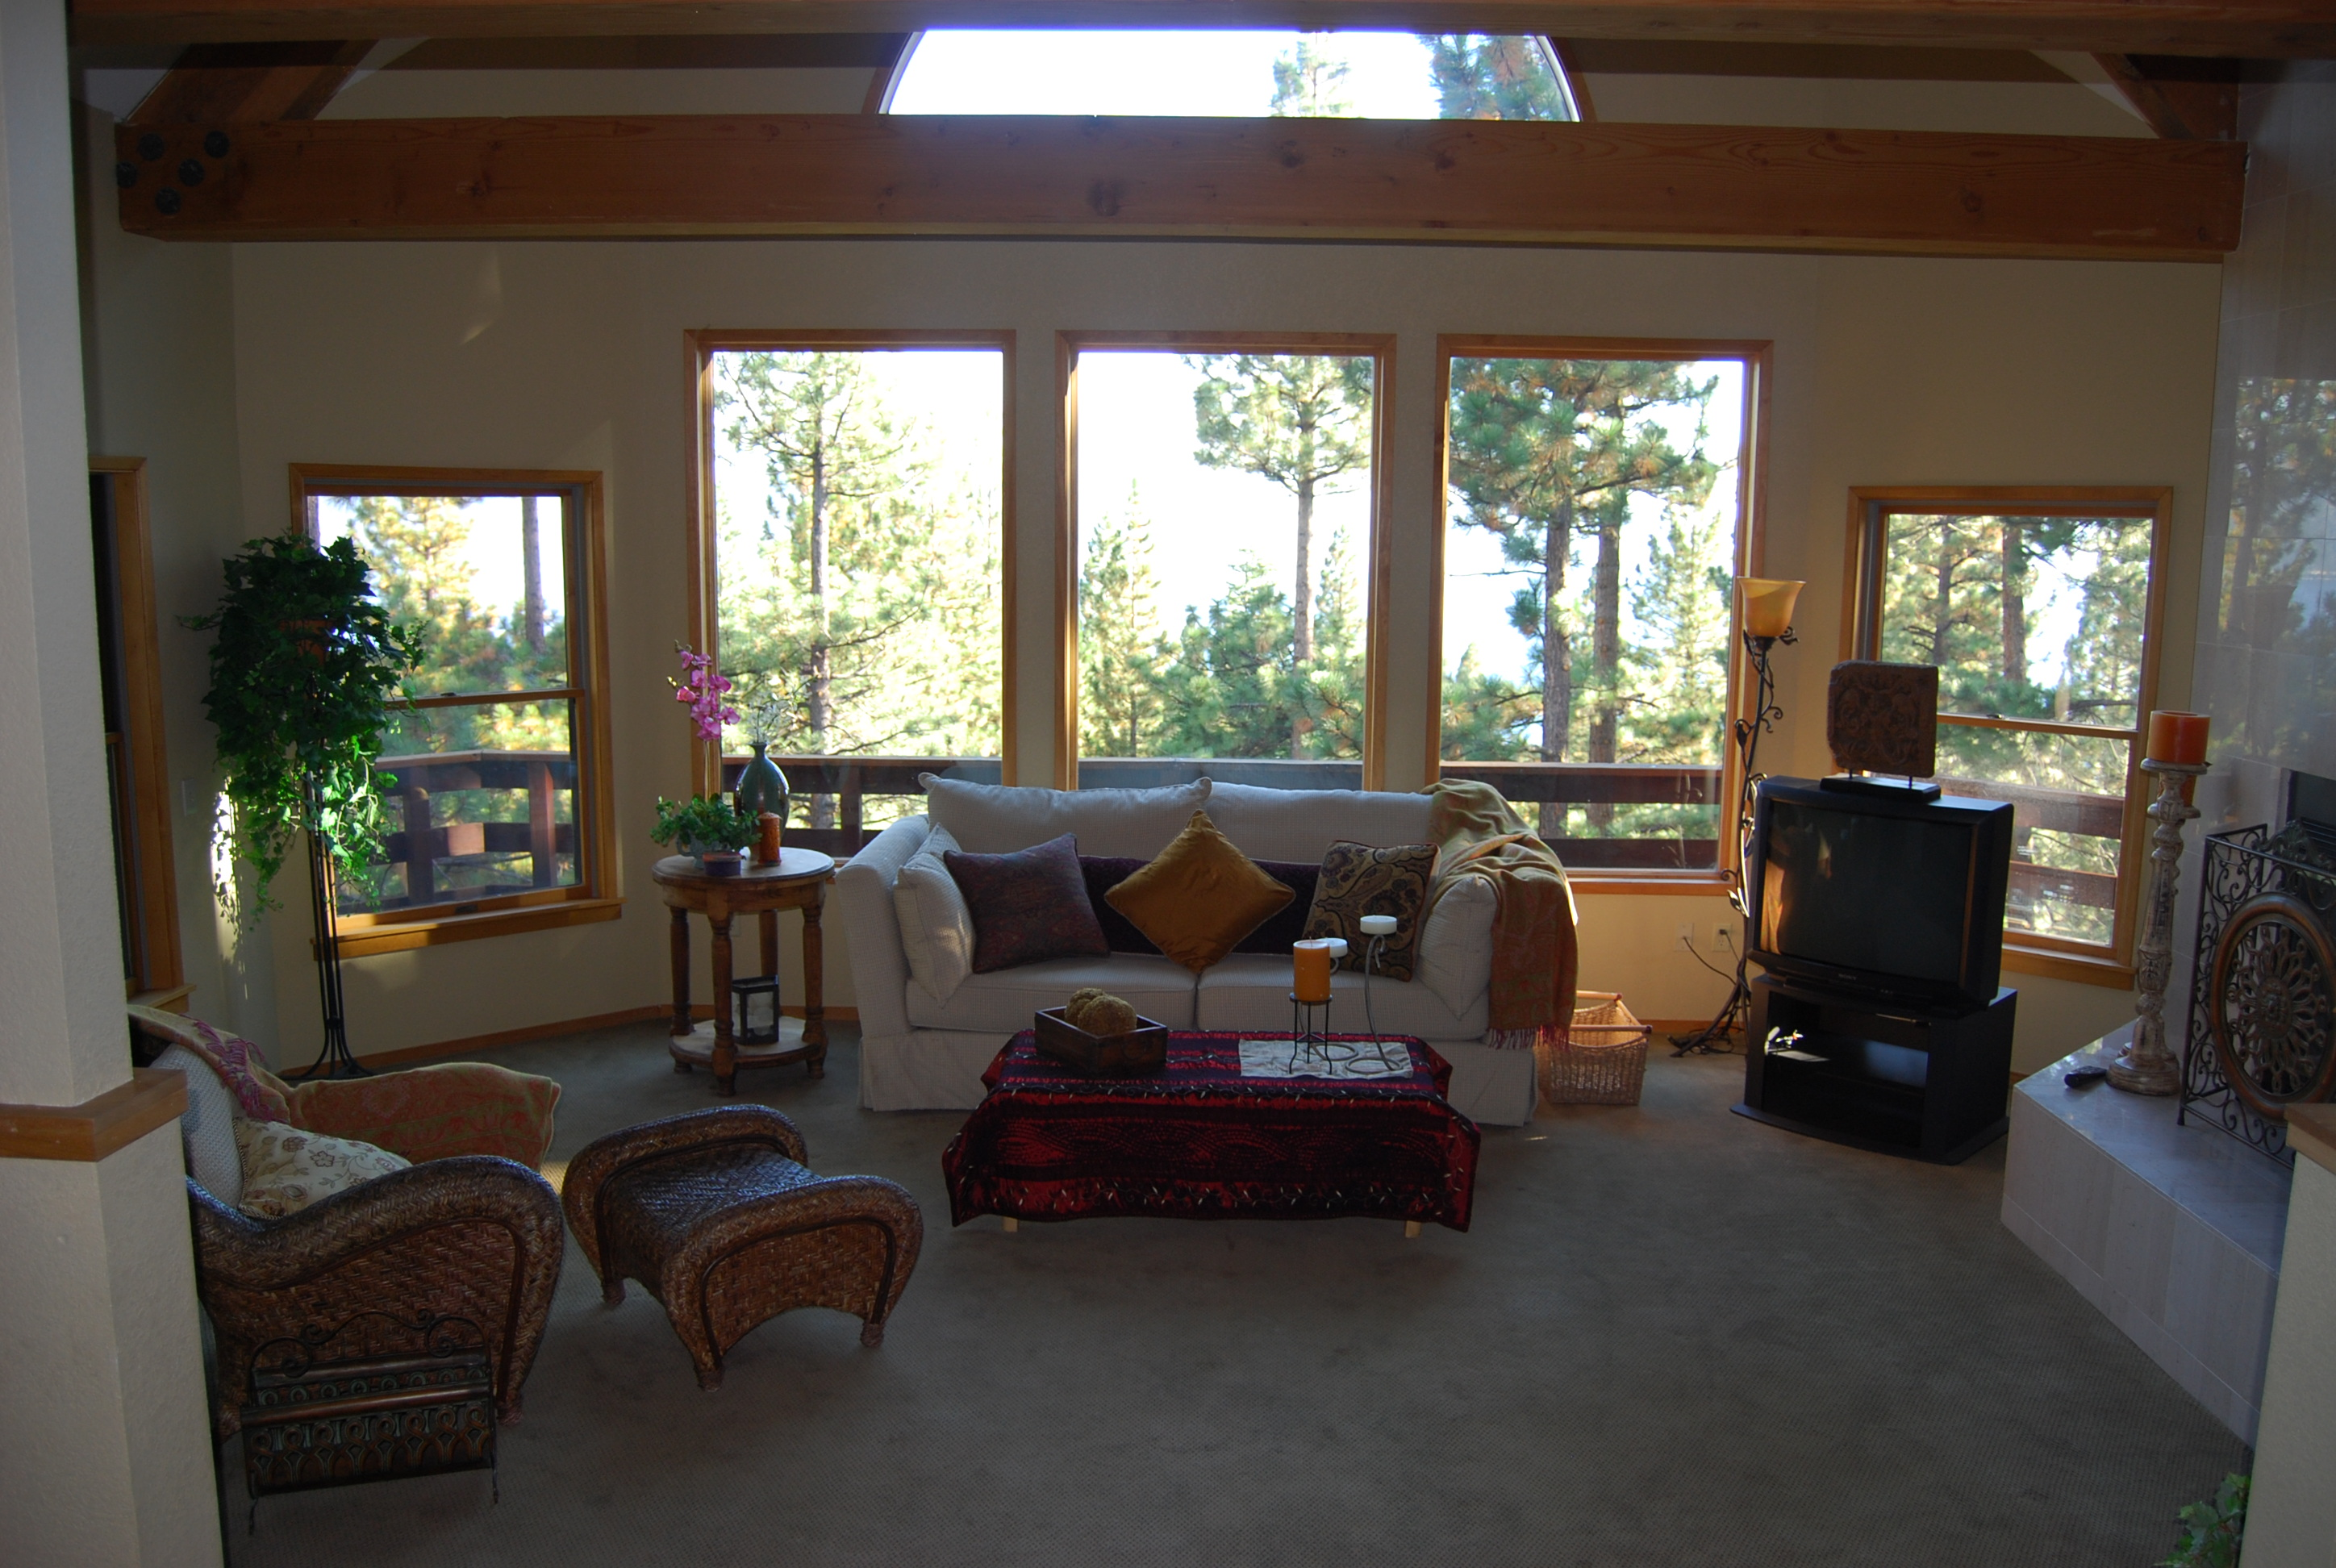 Mountain home remodel phx architecture - Living room remodel before and after ...